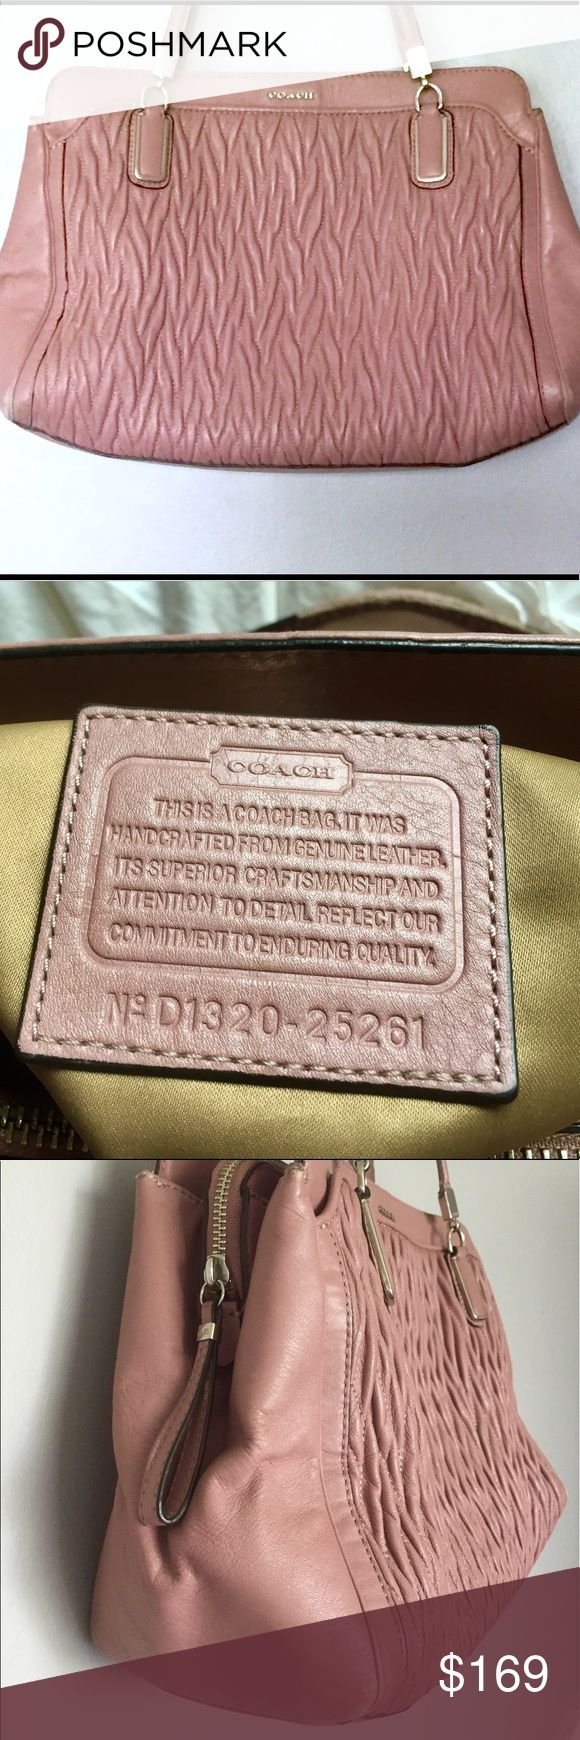 """Coach Madison supple twist leather pink satchel Authentic Coach bag.  Madison gathered twist leather in pink.  Supple leather that goes through special process to gather & twist.  Front snap pocket.  Inside two snap + one zip closure areas.  Cell/lipstick pockets all fabric lined.  No stains!!!  I used the hell outta this bag.  It looks fantastic (no kids).  Scuffs at bottom corners and handles.  7 1/2"""" handles.  Easy over shoulders or hand carry.  Bag: 14 1/2 x 12 1/4 x 6""""  Dusty Rose…"""